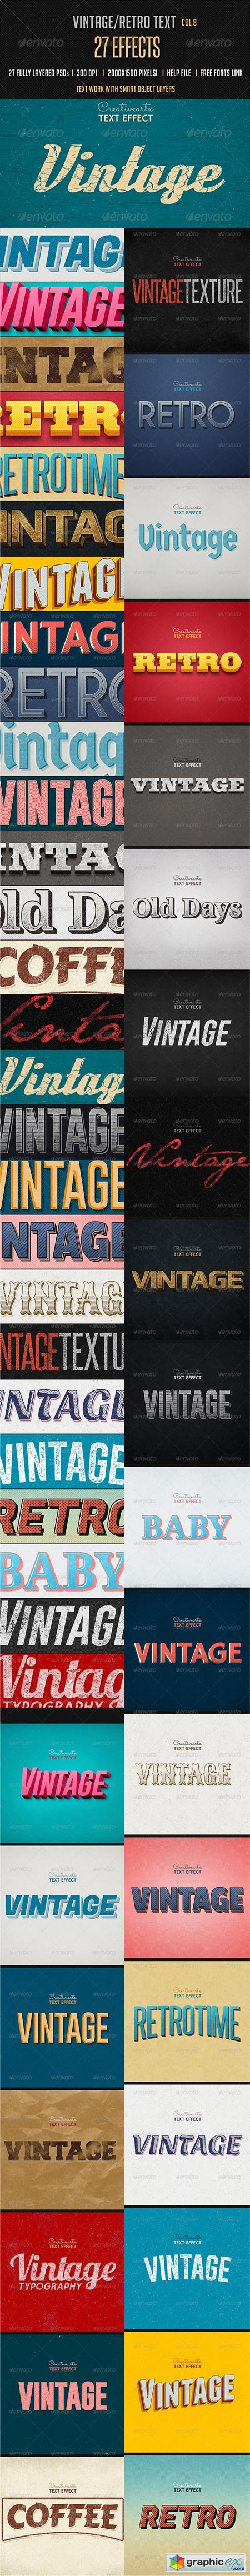 Vintage Retro Text Effects Col 8 8537330